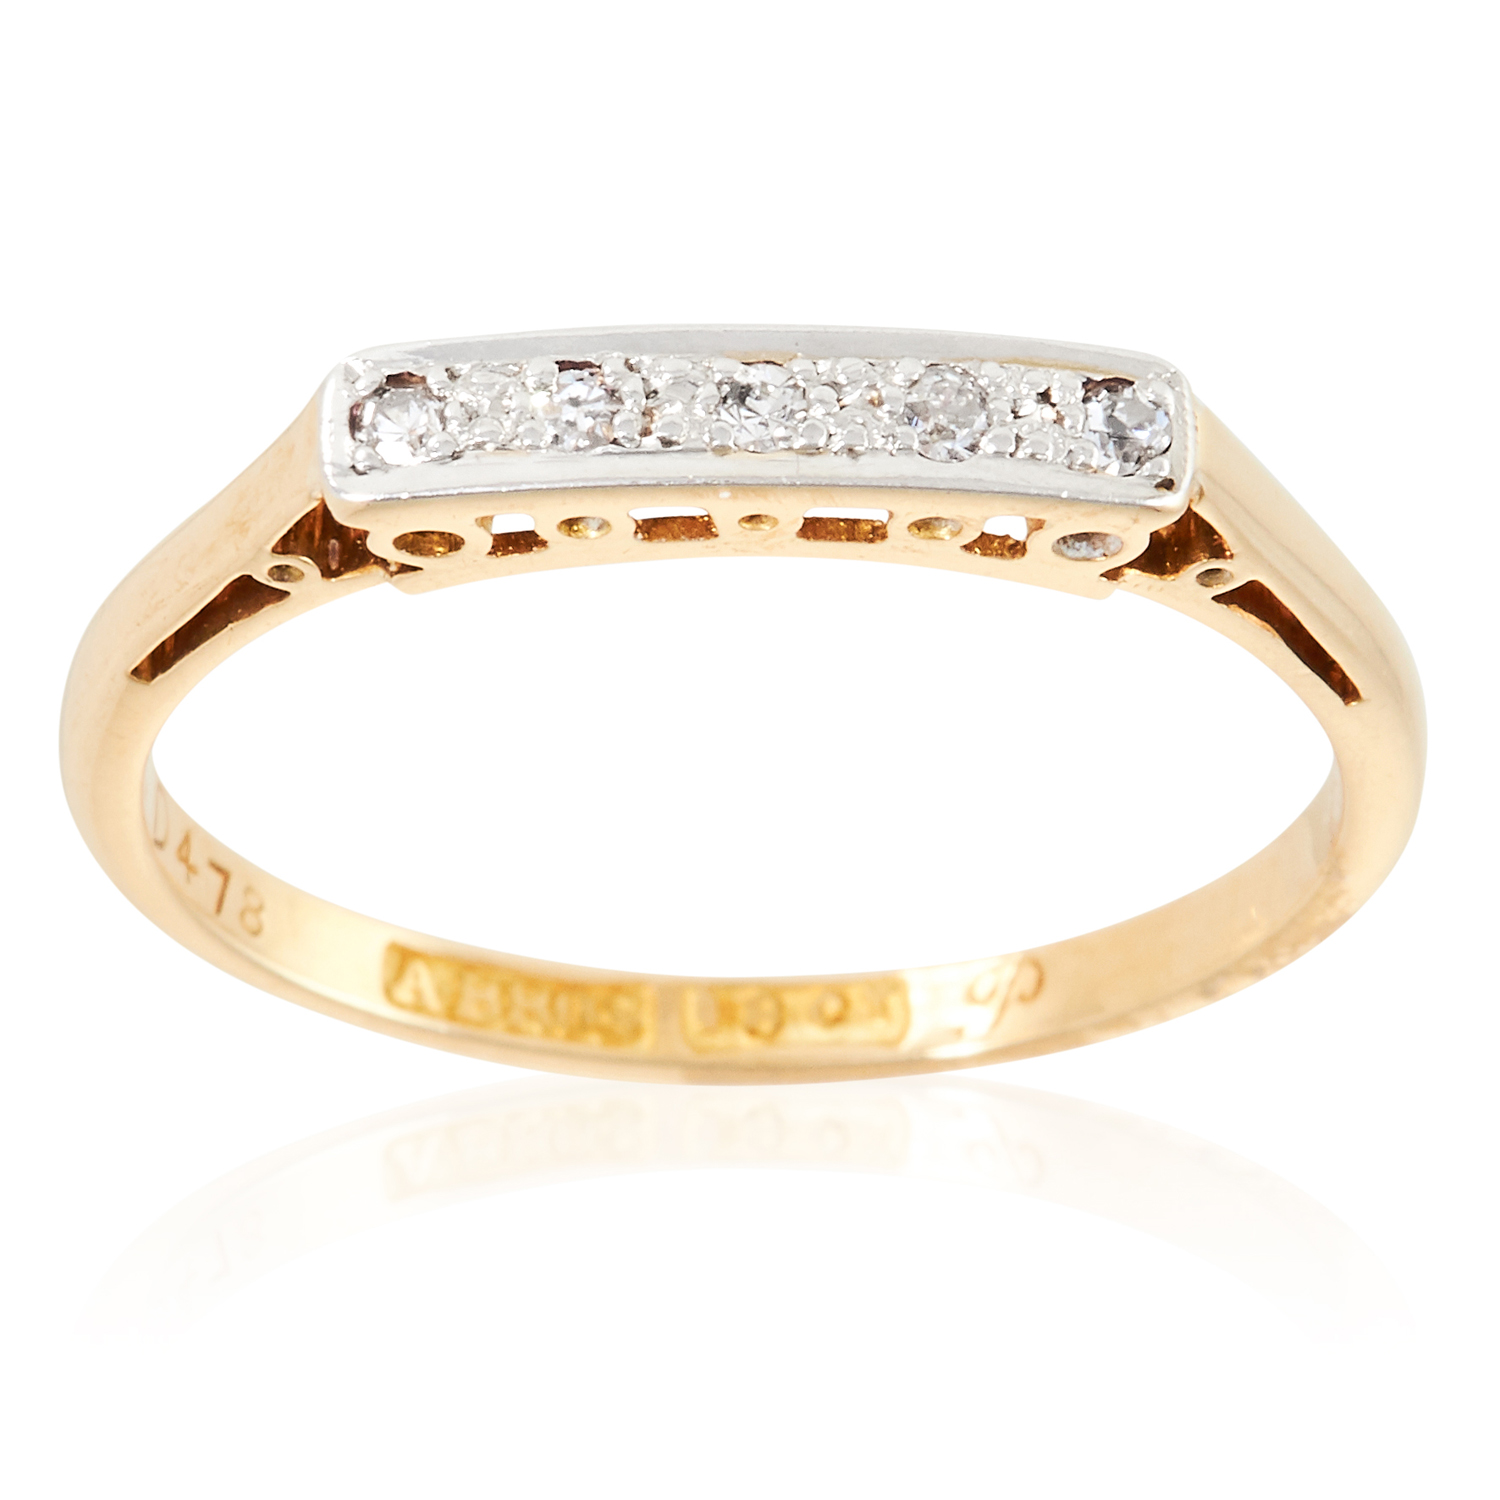 A DIAMOND DRESS RING in 18ct yellow gold, set with five round cut diamonds, stamped 18CT, size P /